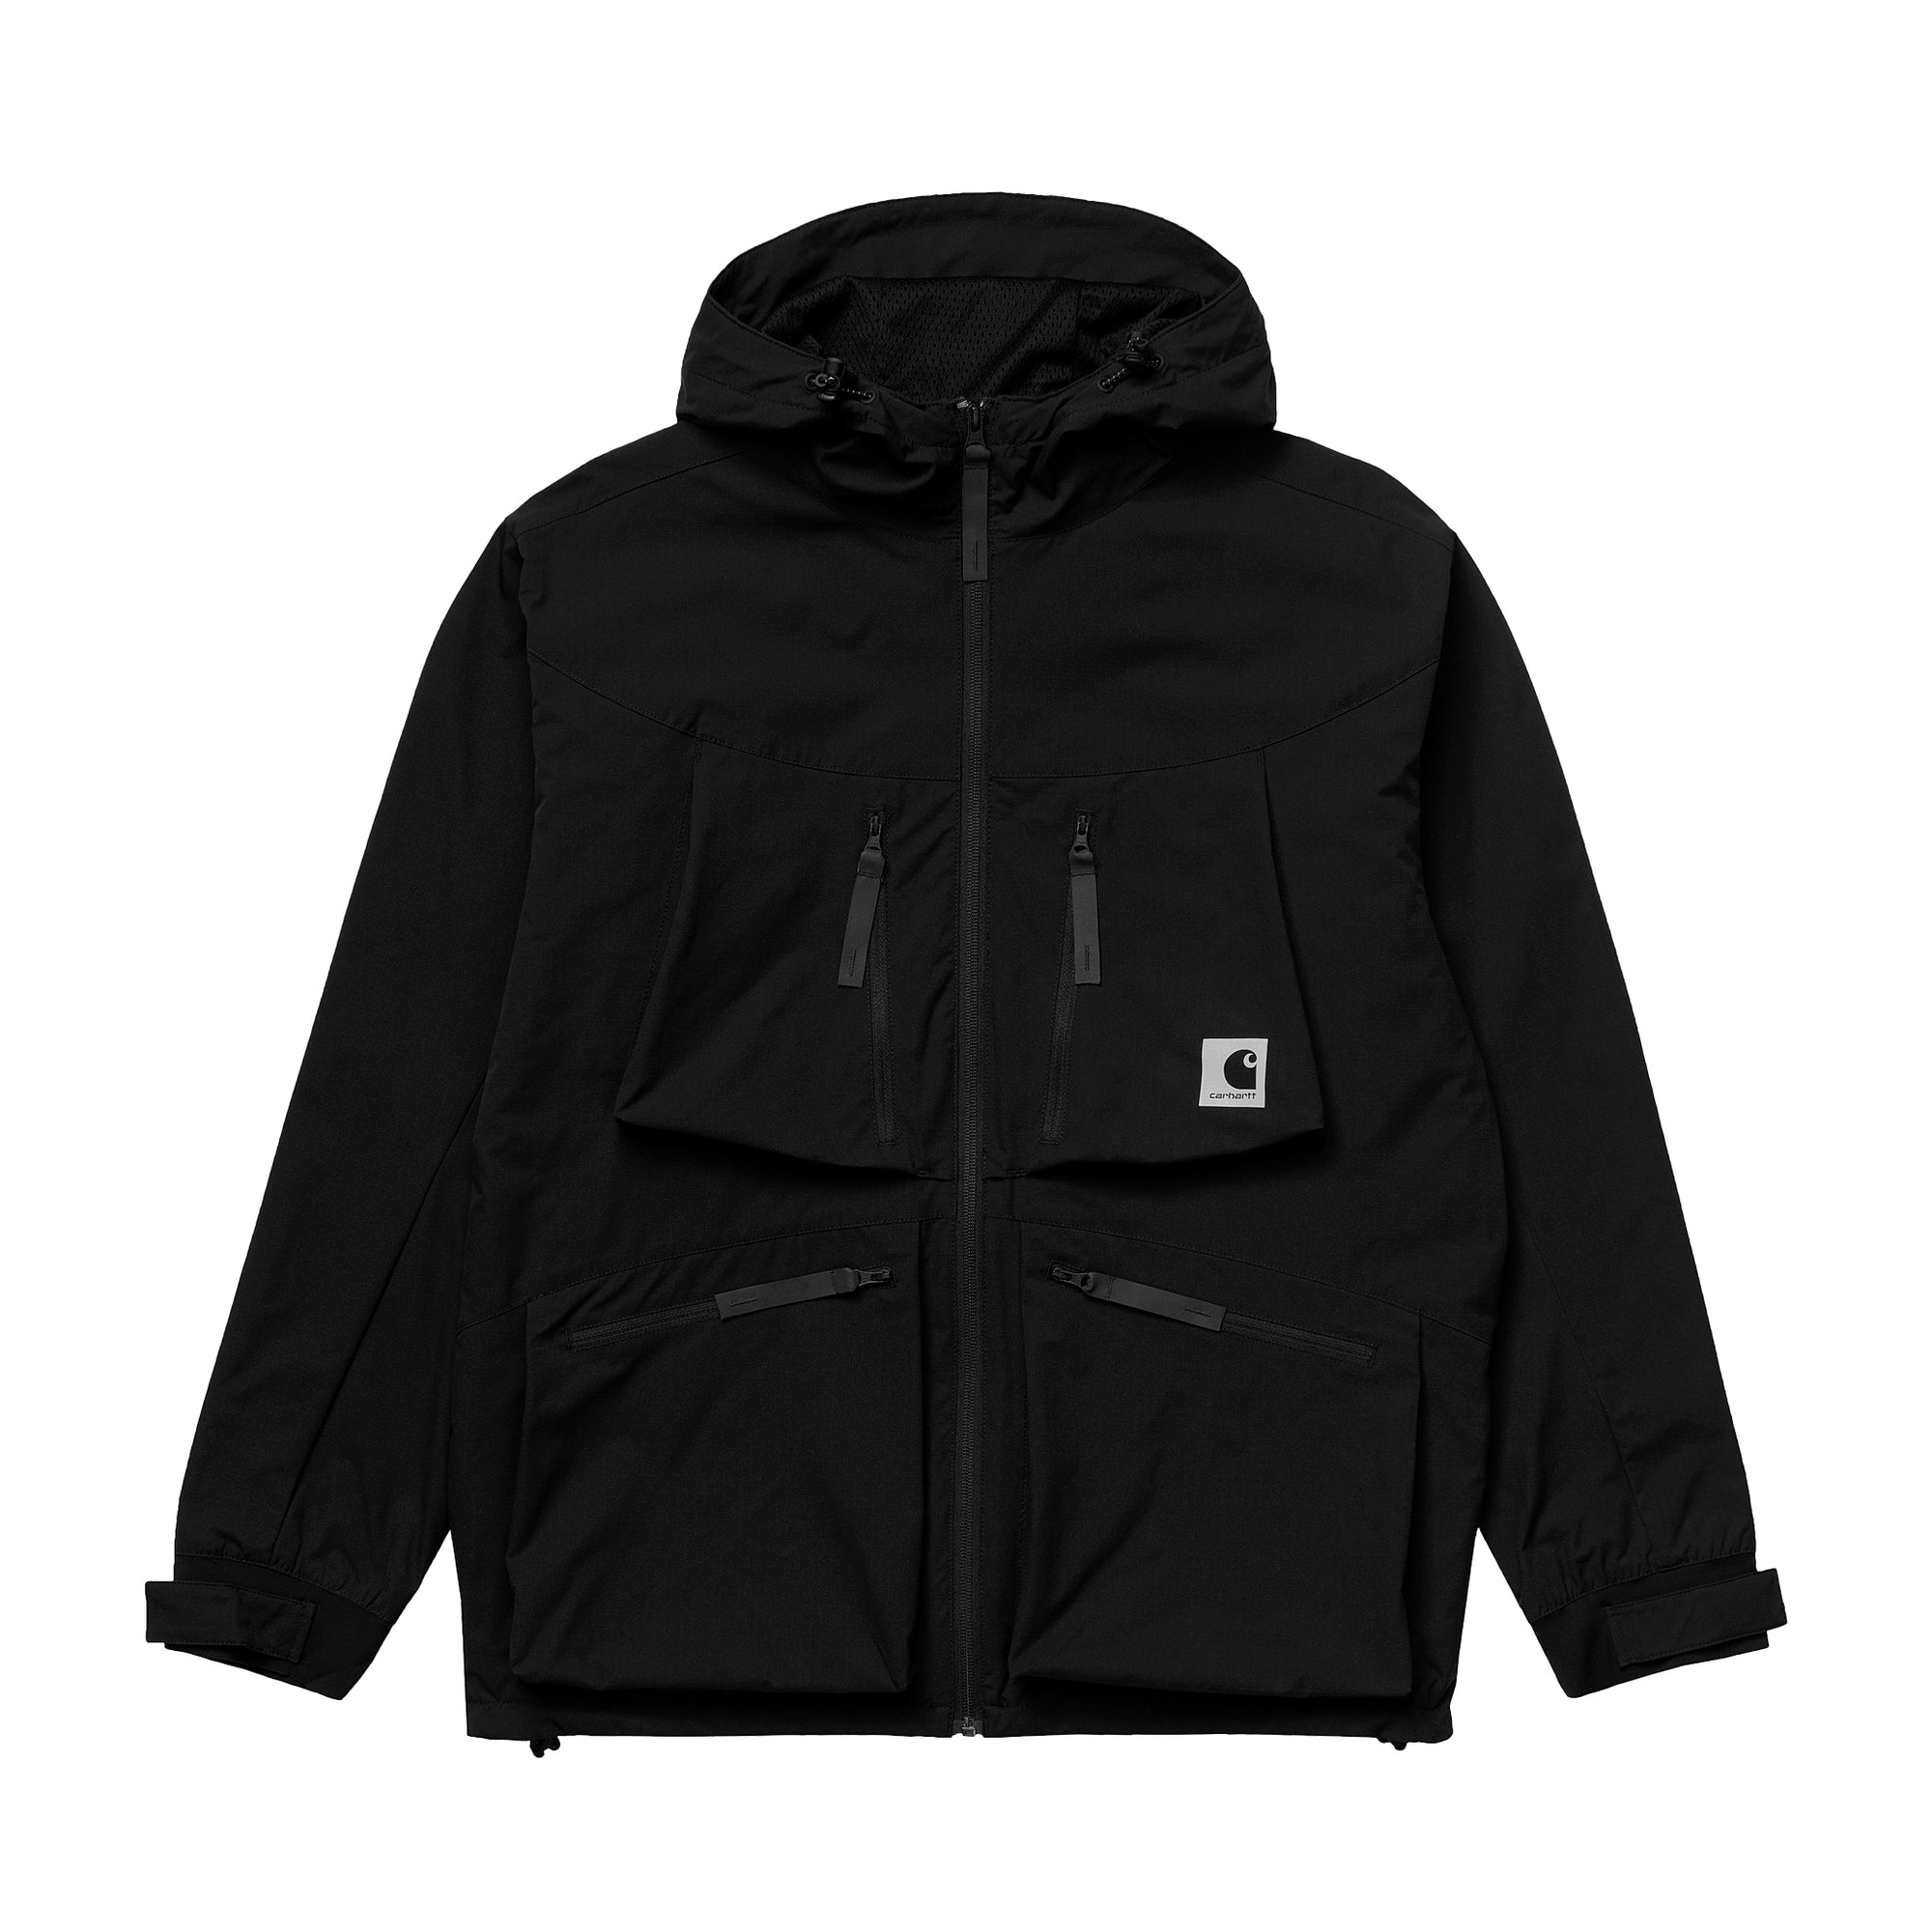 Carhartt WIP Hurst Jacket: Black - The Union Project